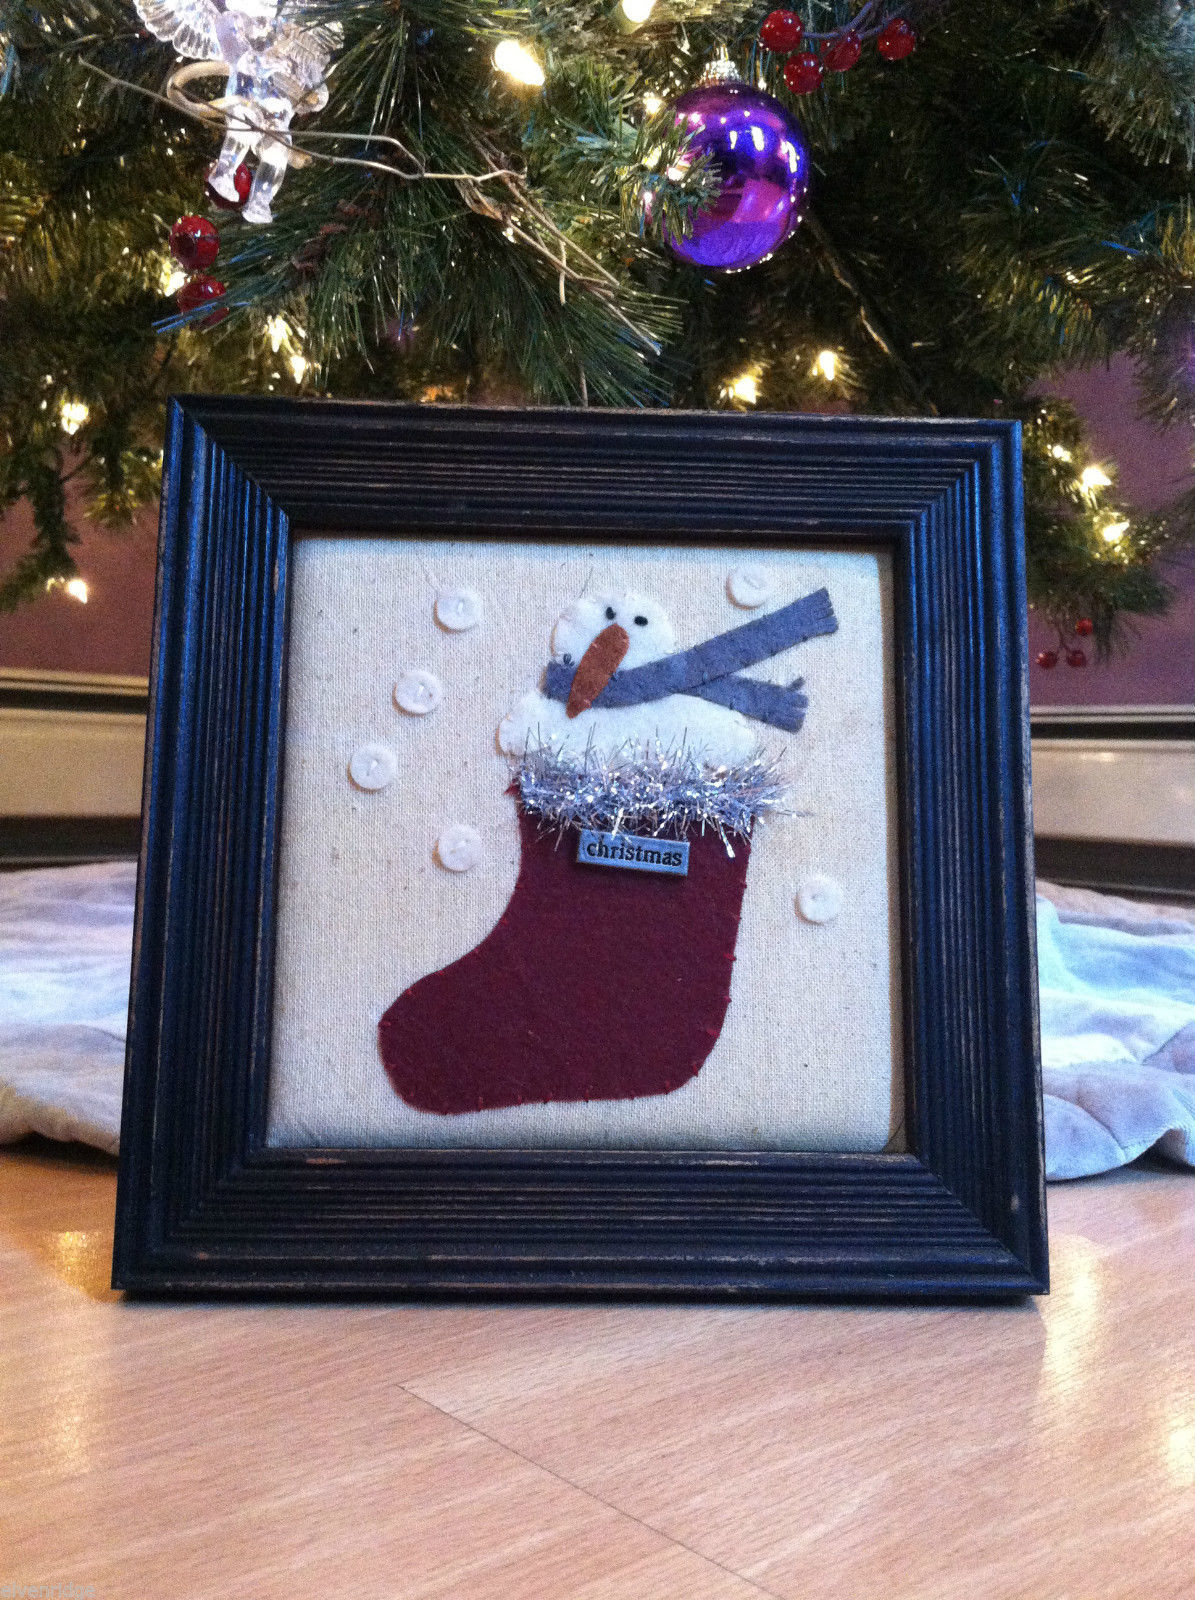 Framed Fabric Stitching Picture of Snowman in Christmas Red Stocking